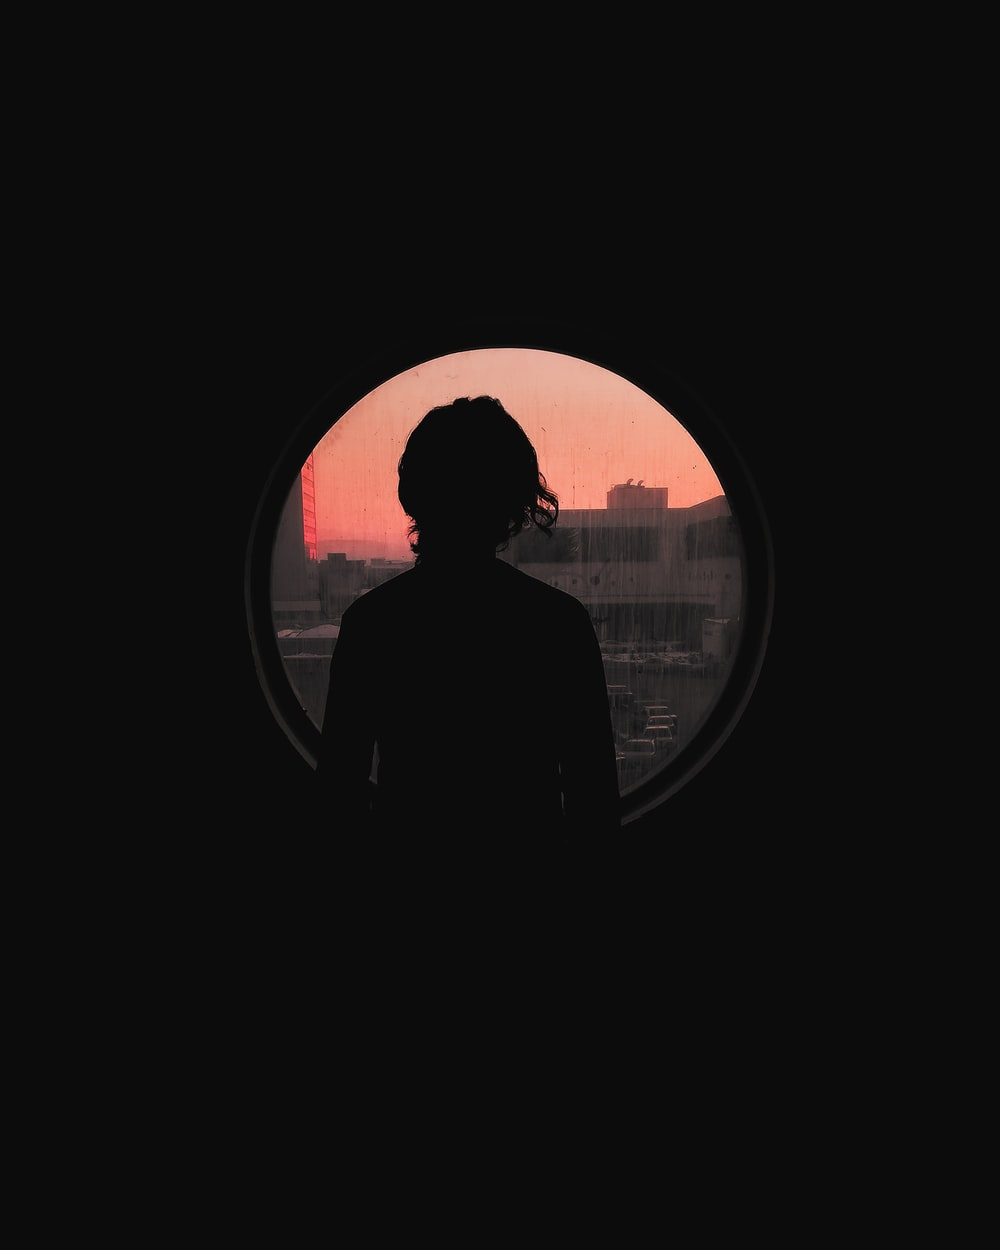 silhouette of man standing near window during daytime